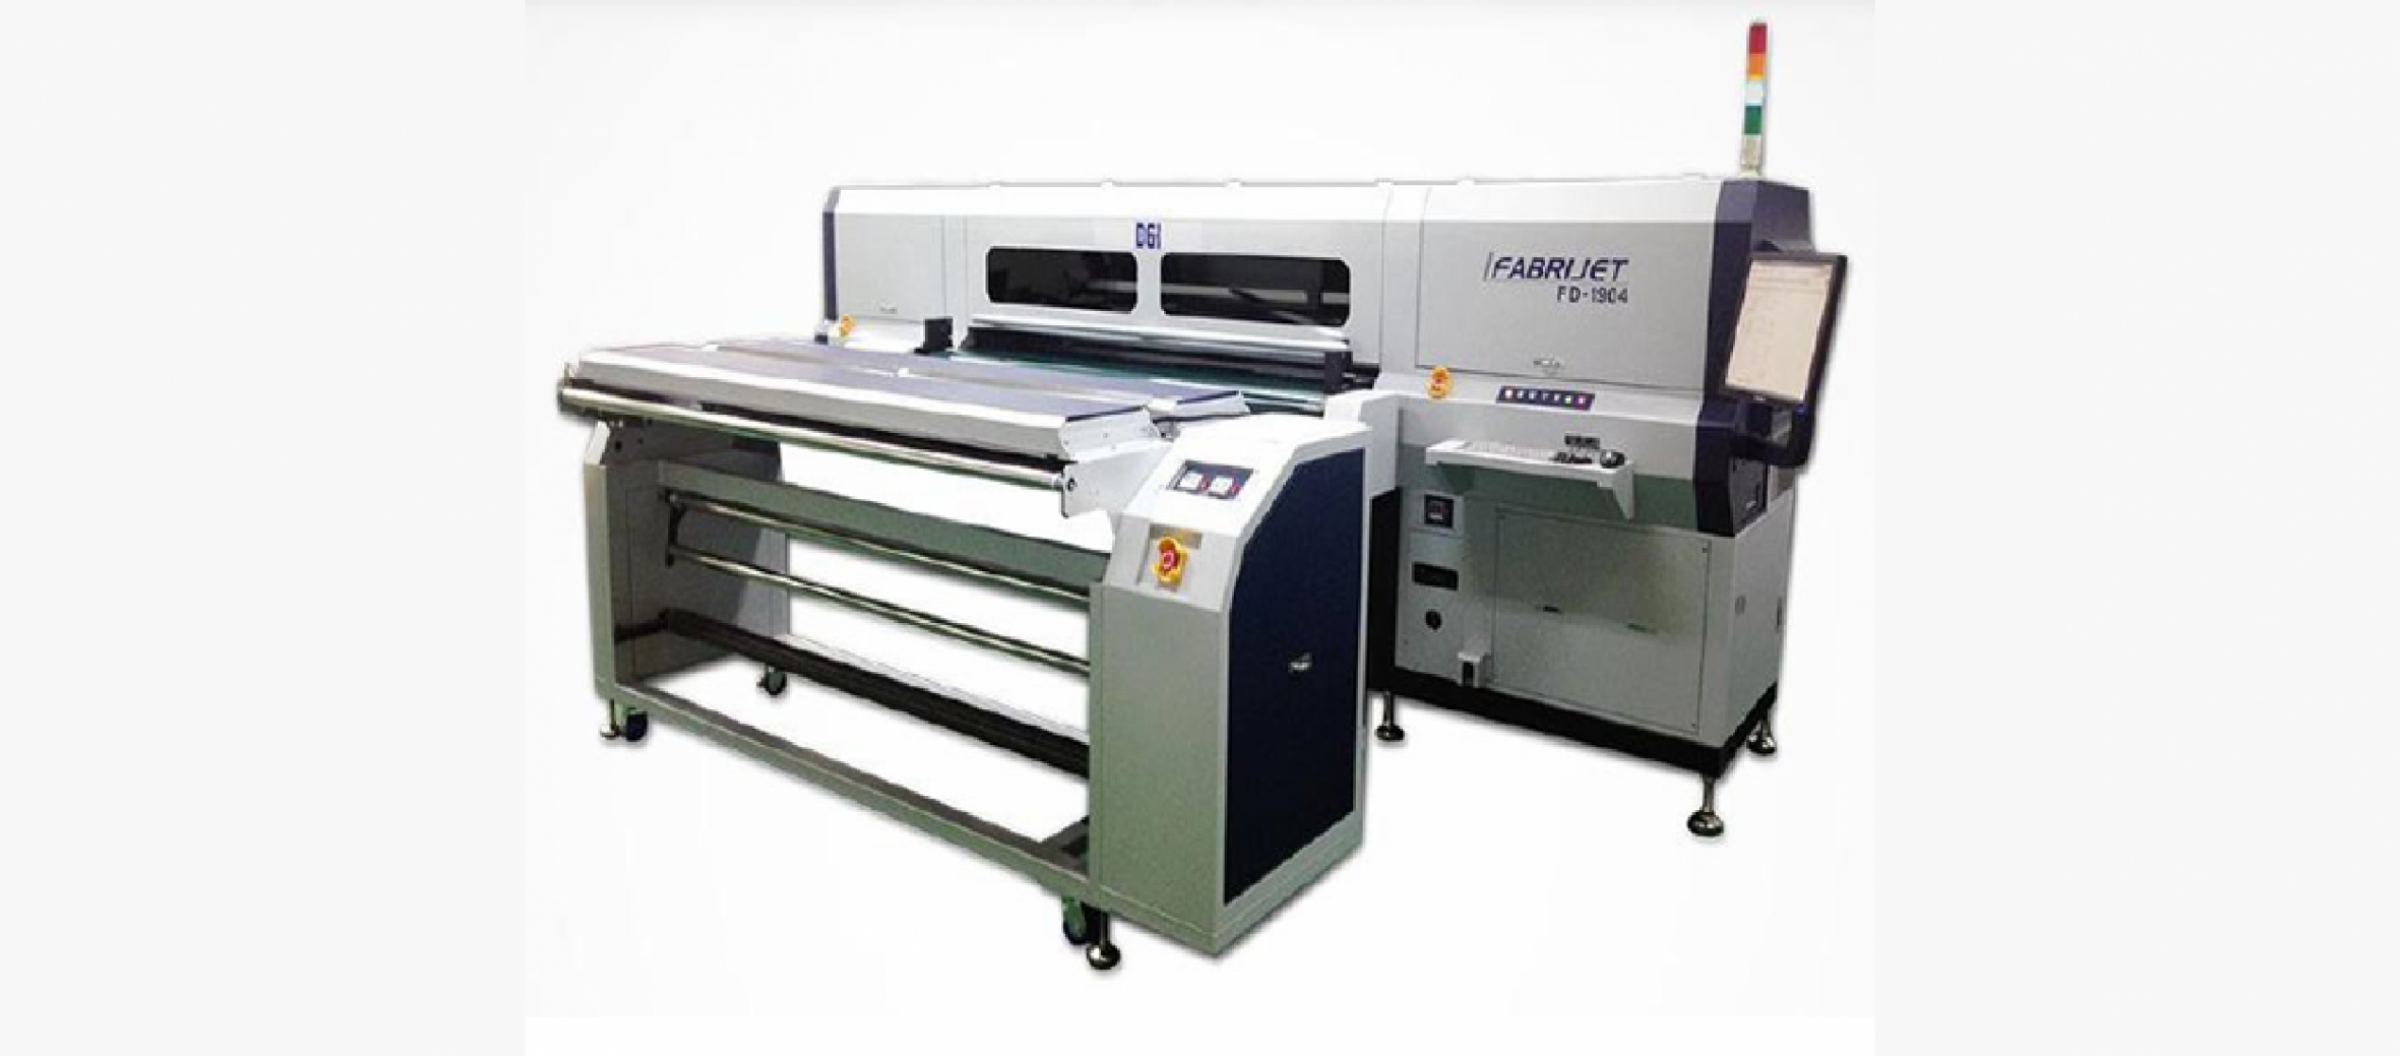 FD-1904 direct digital textile printing plotter